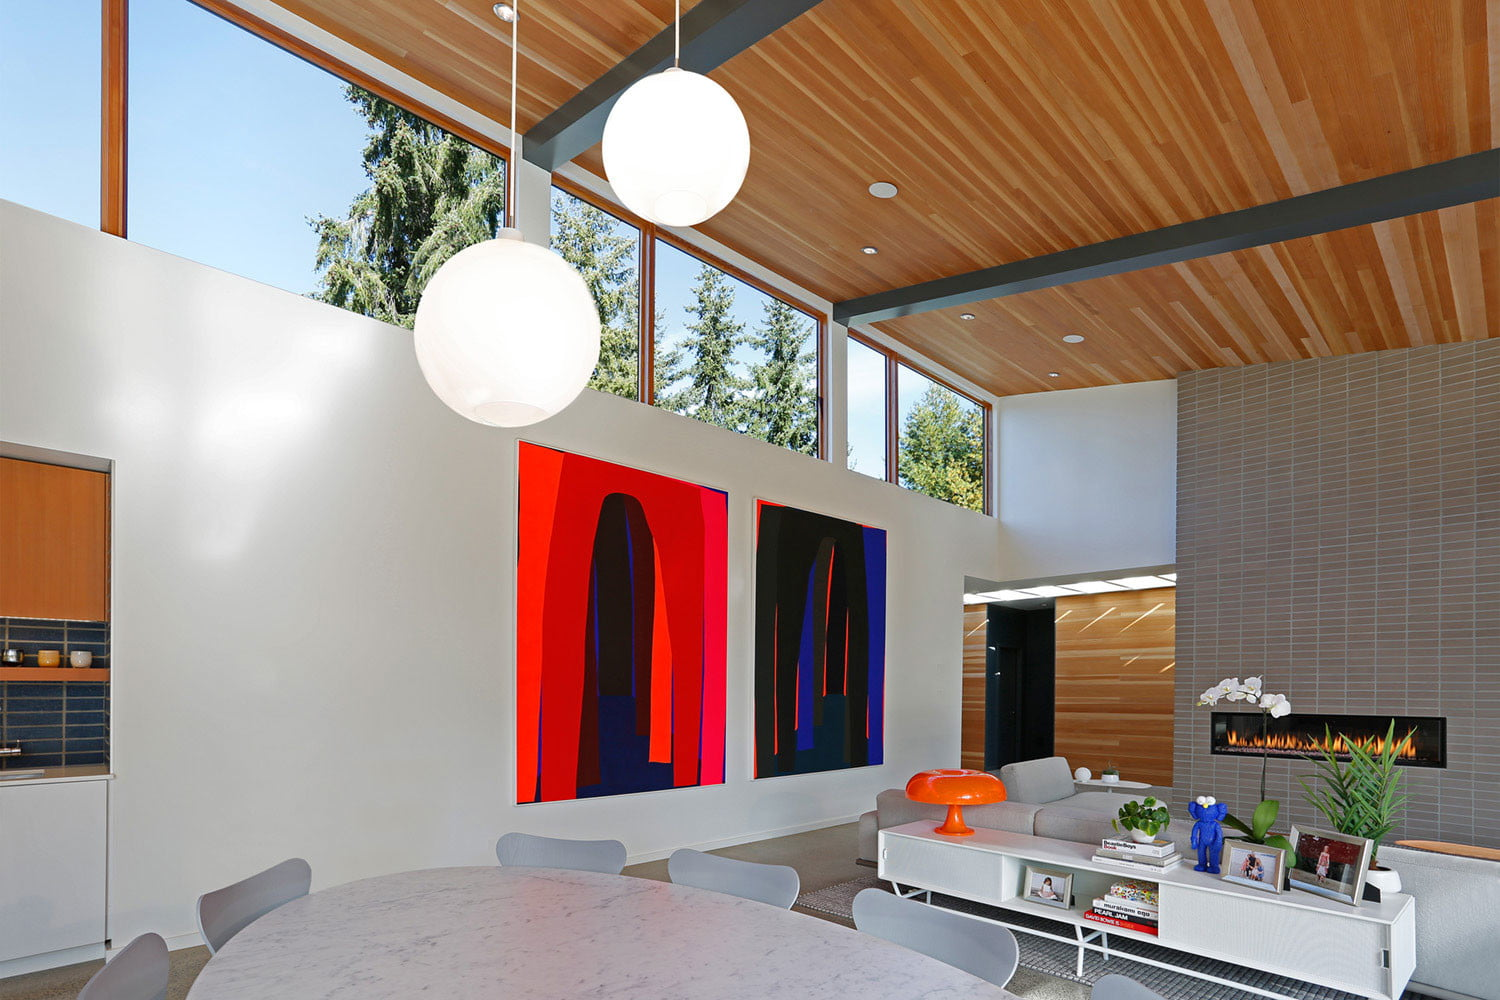 clyde hill house mid century modern revival residence 2